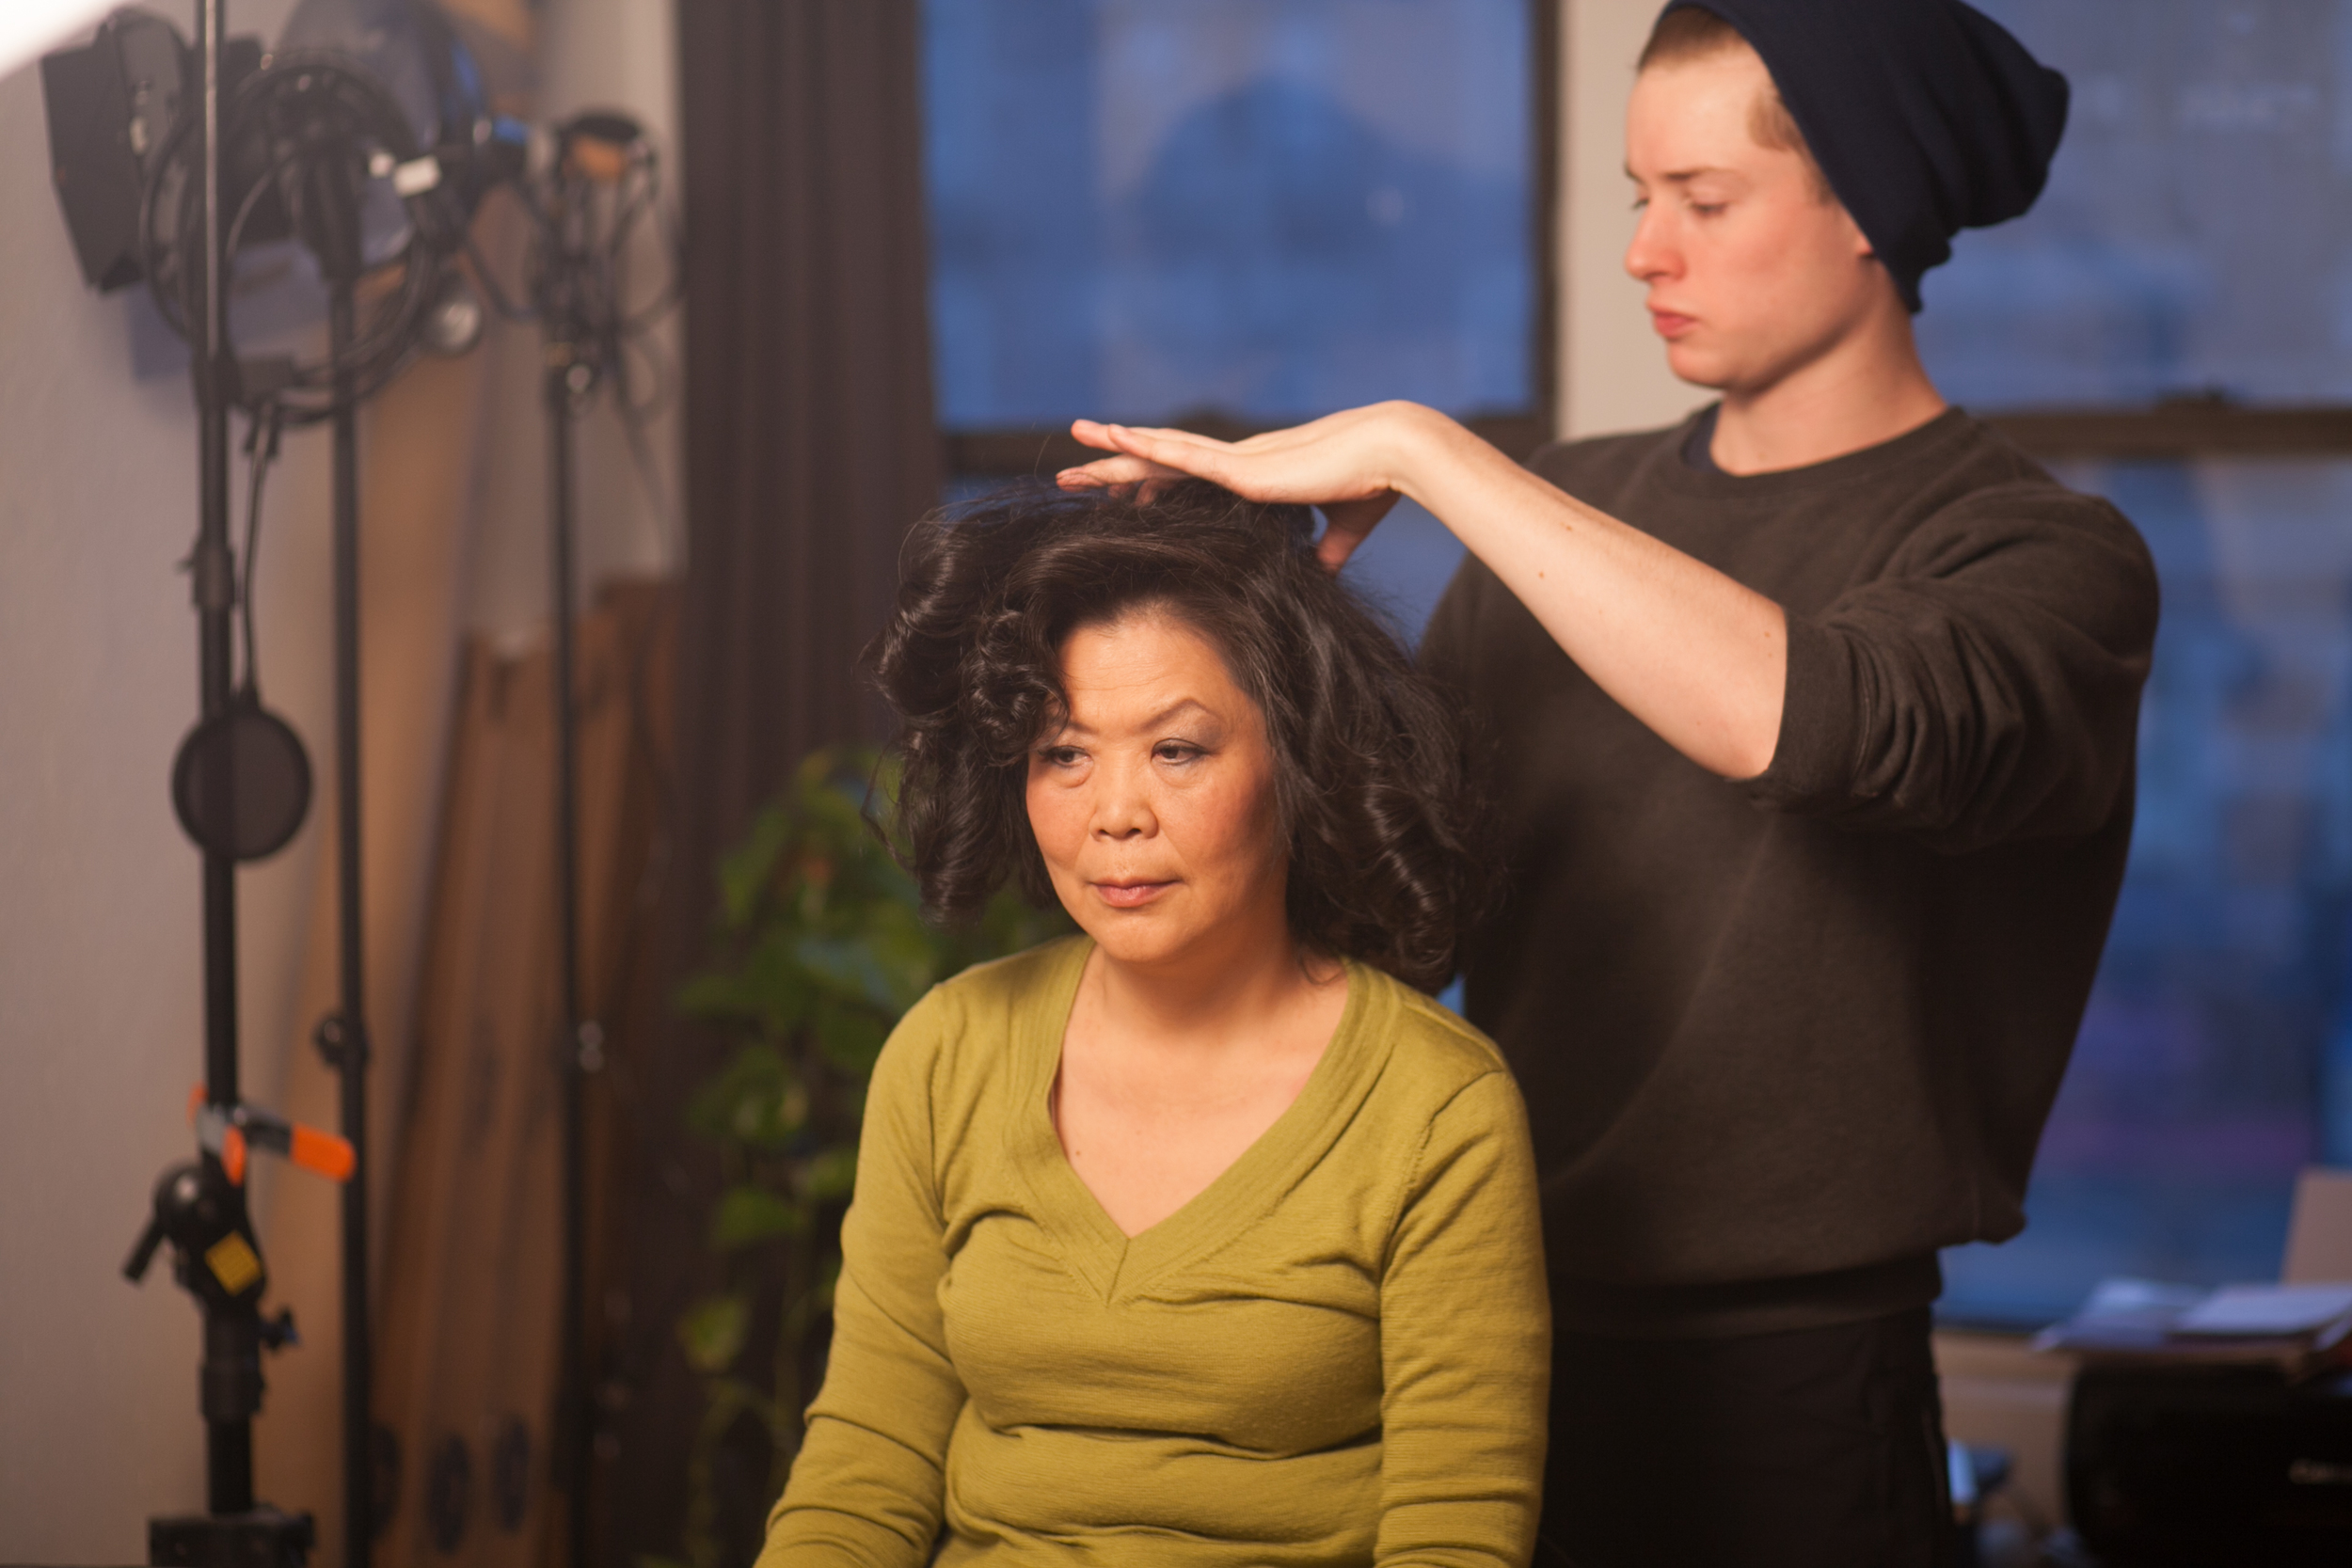 6 am hair/make-up call for Wendy Huang (Mrs. Yue) with hair stylist Blake Clendenin.